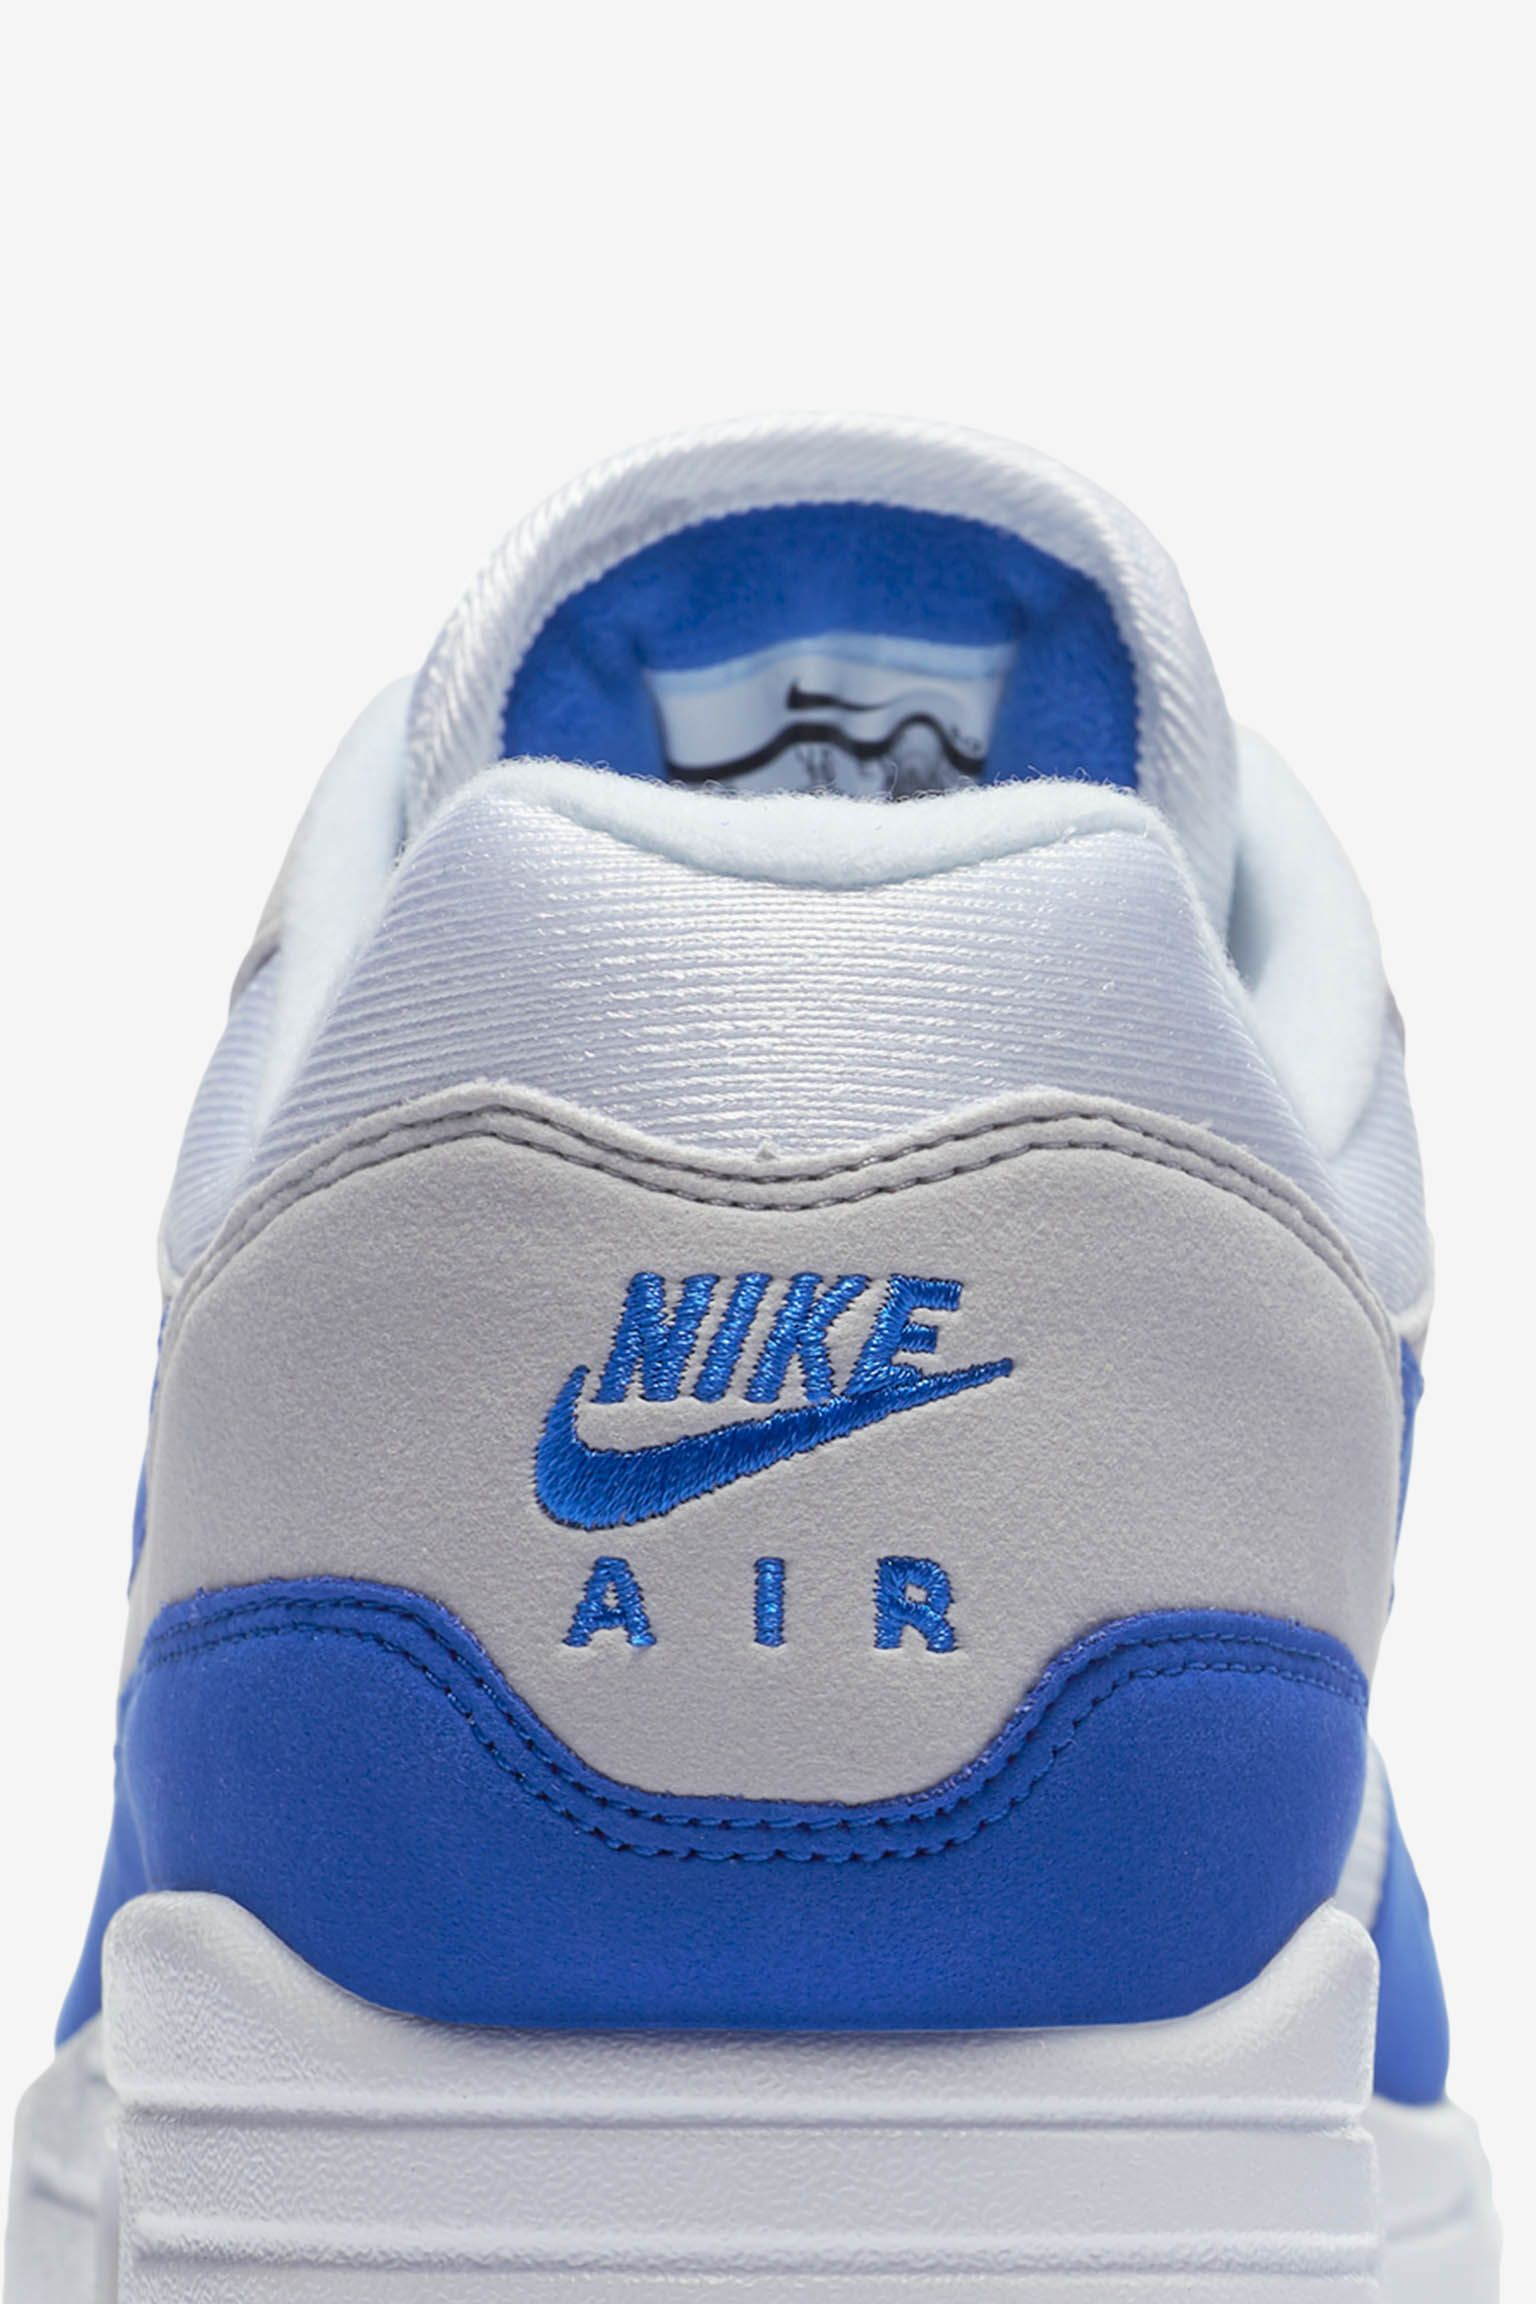 half off 8a73c 9c458 ... promo code for nike air max 1 anniversary white neutral grey game royal  release date 81e48 ...